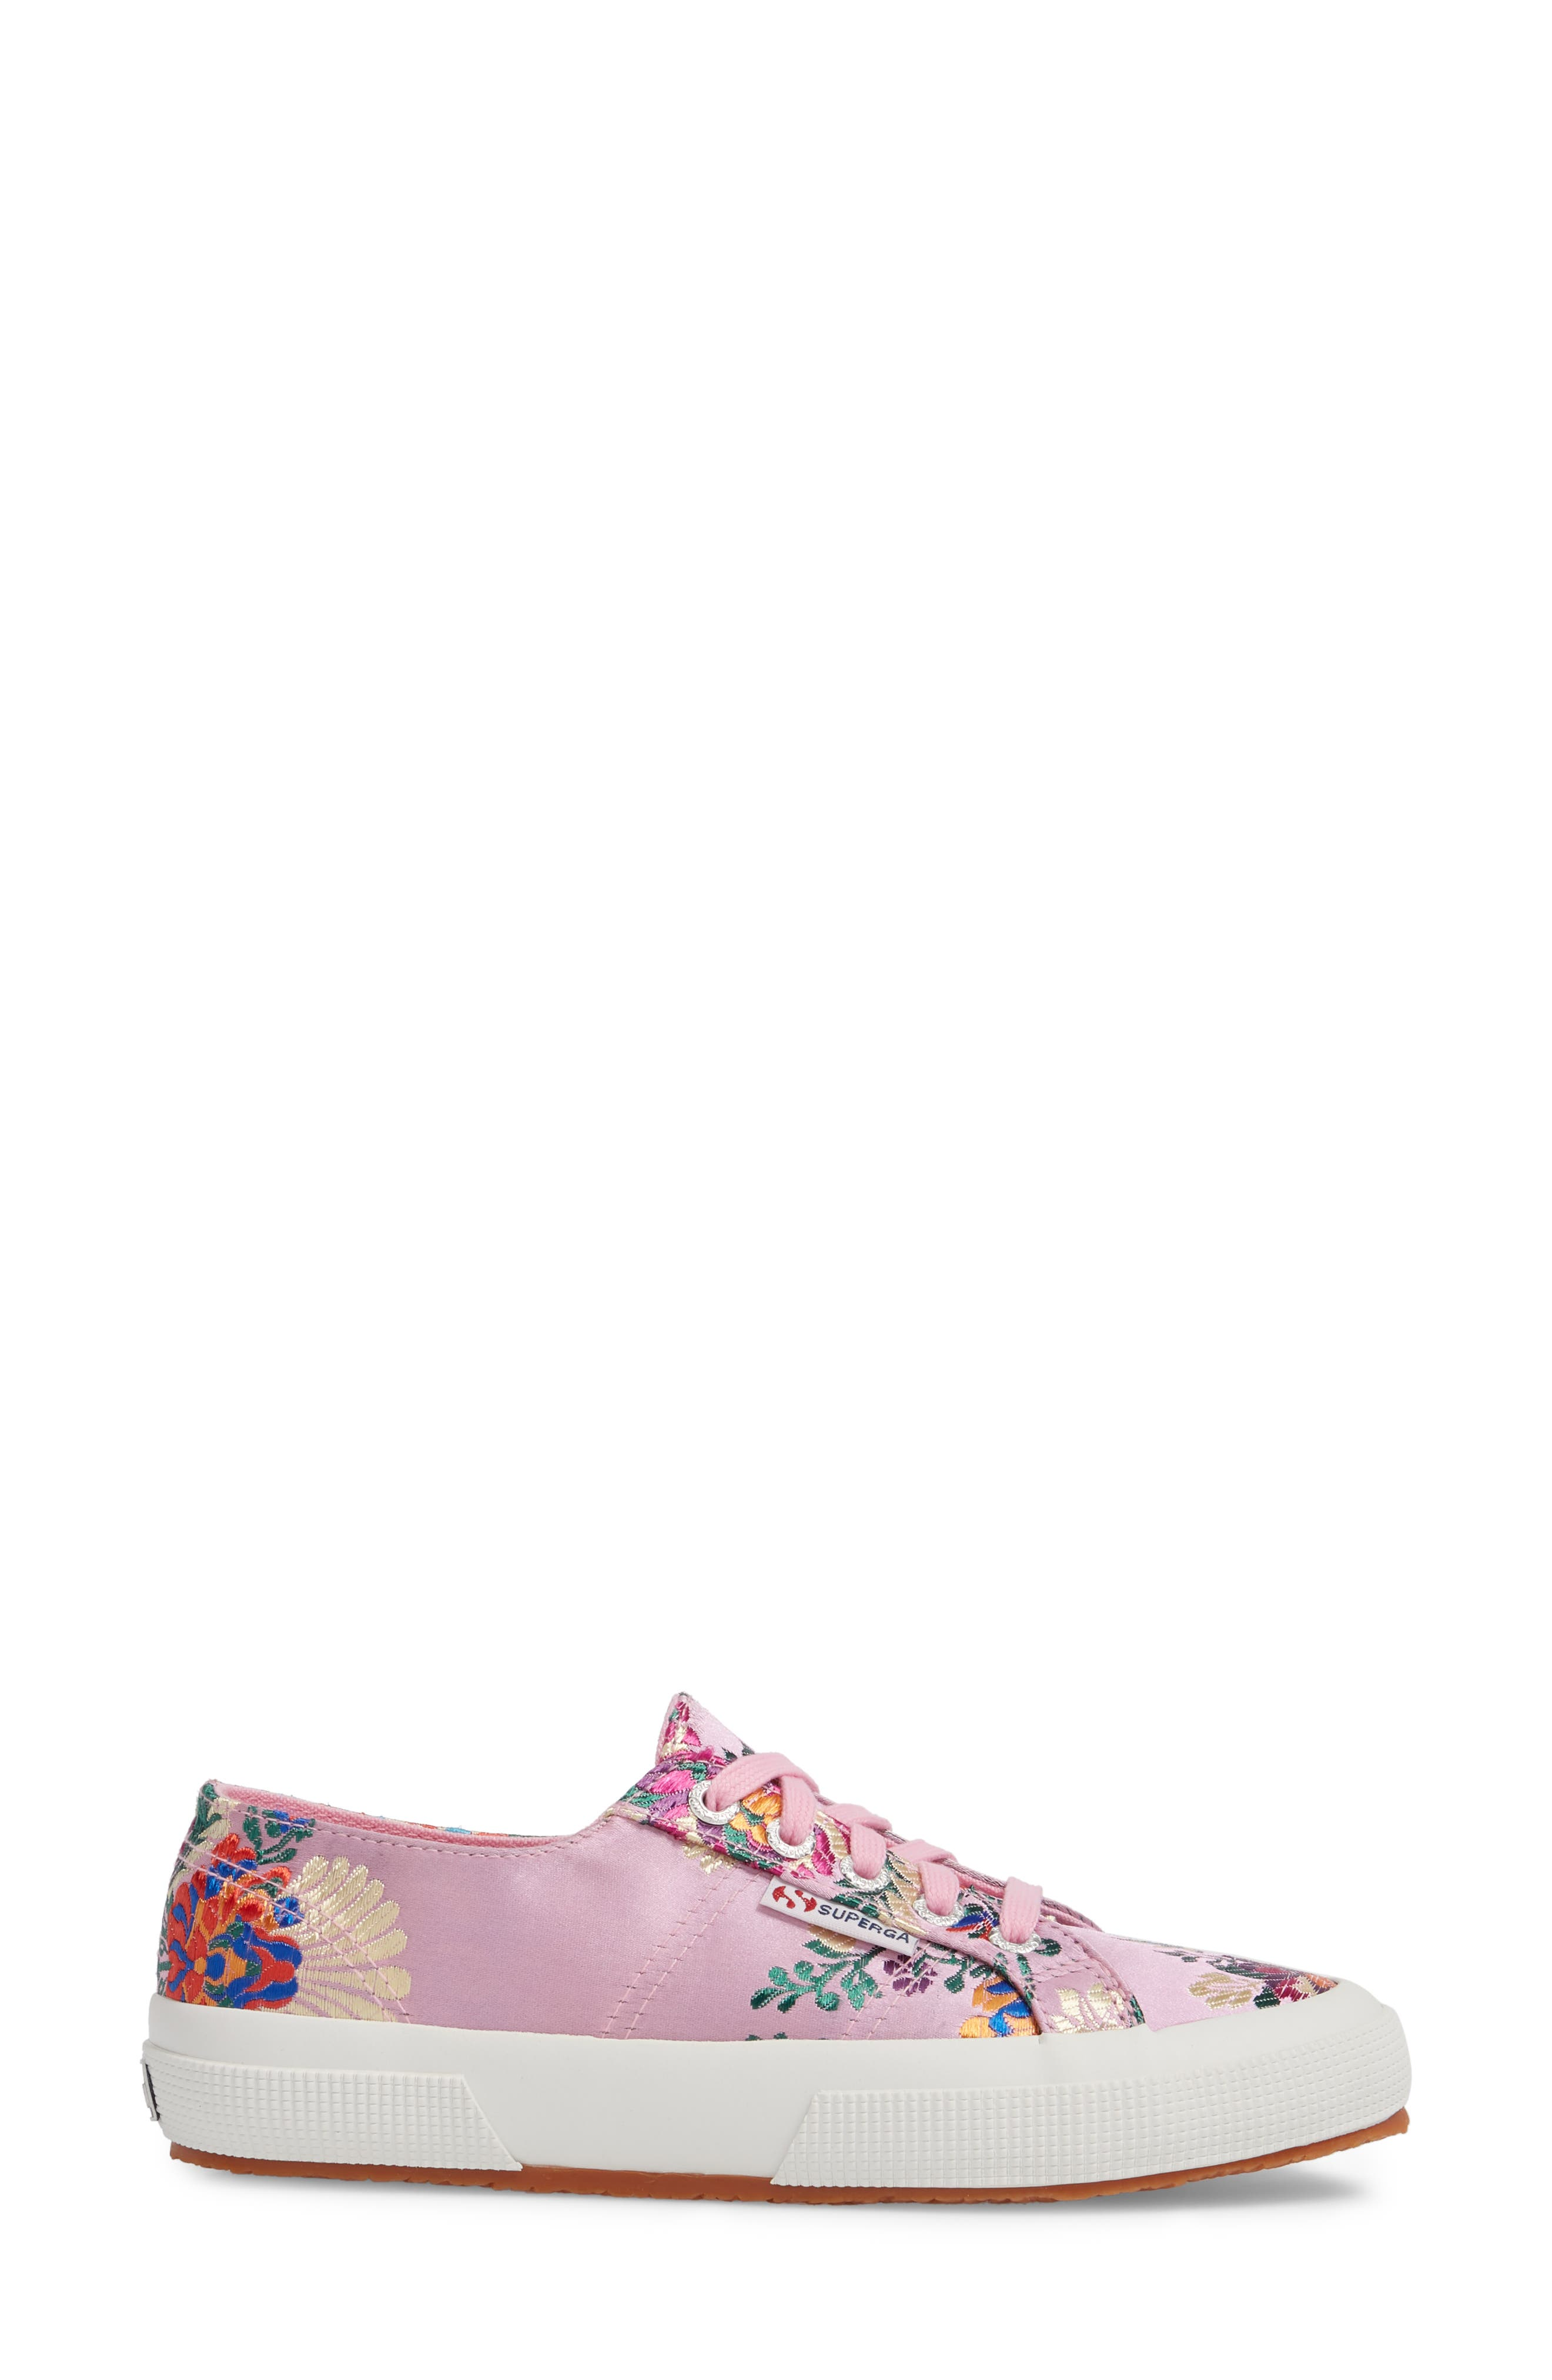 2750 Embroidered Sneaker,                             Alternate thumbnail 3, color,                             Pink